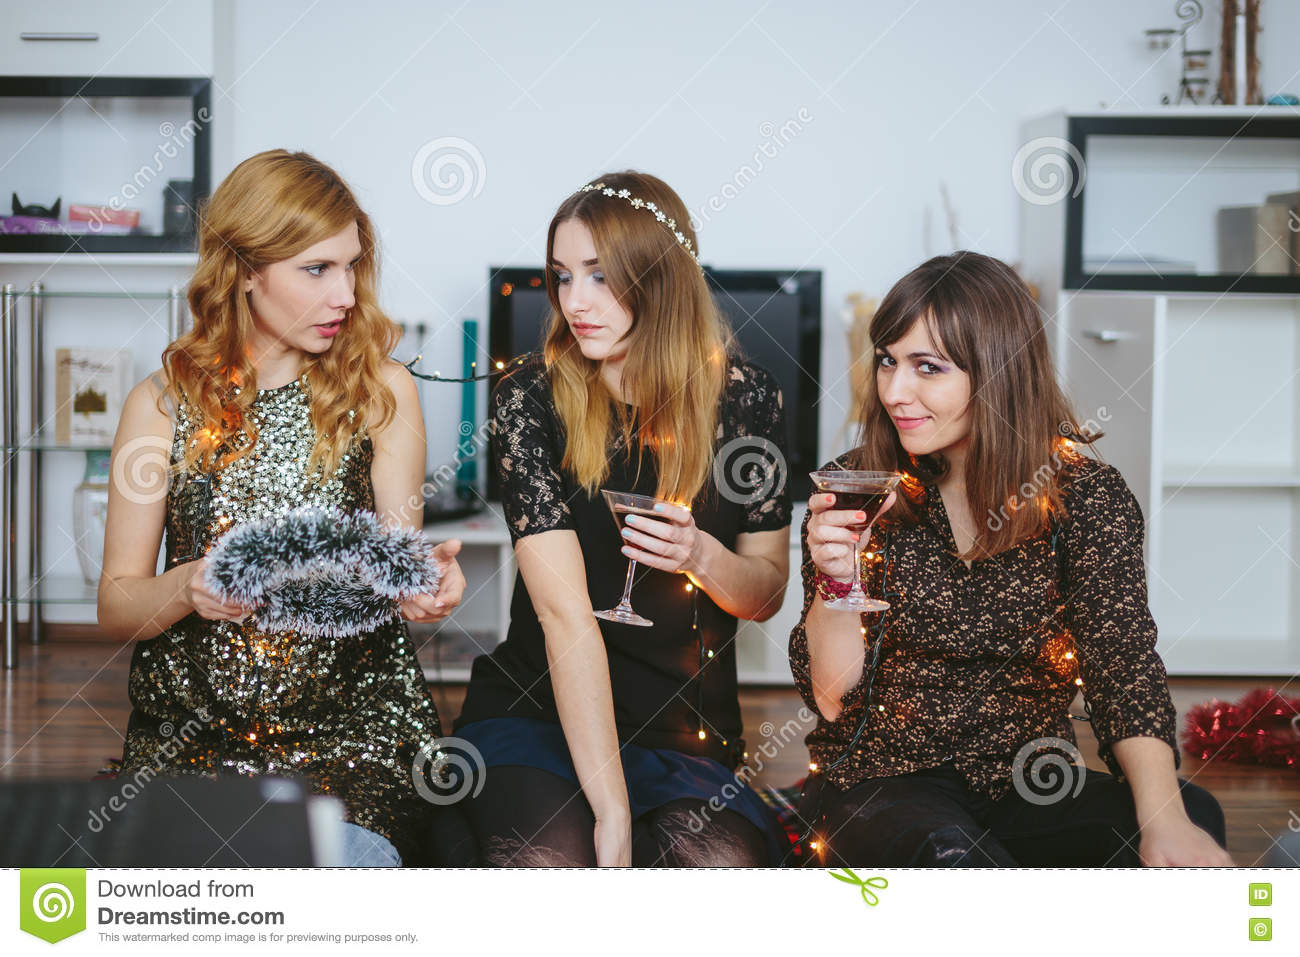 three girls decorating their room for a christmas or new year`s